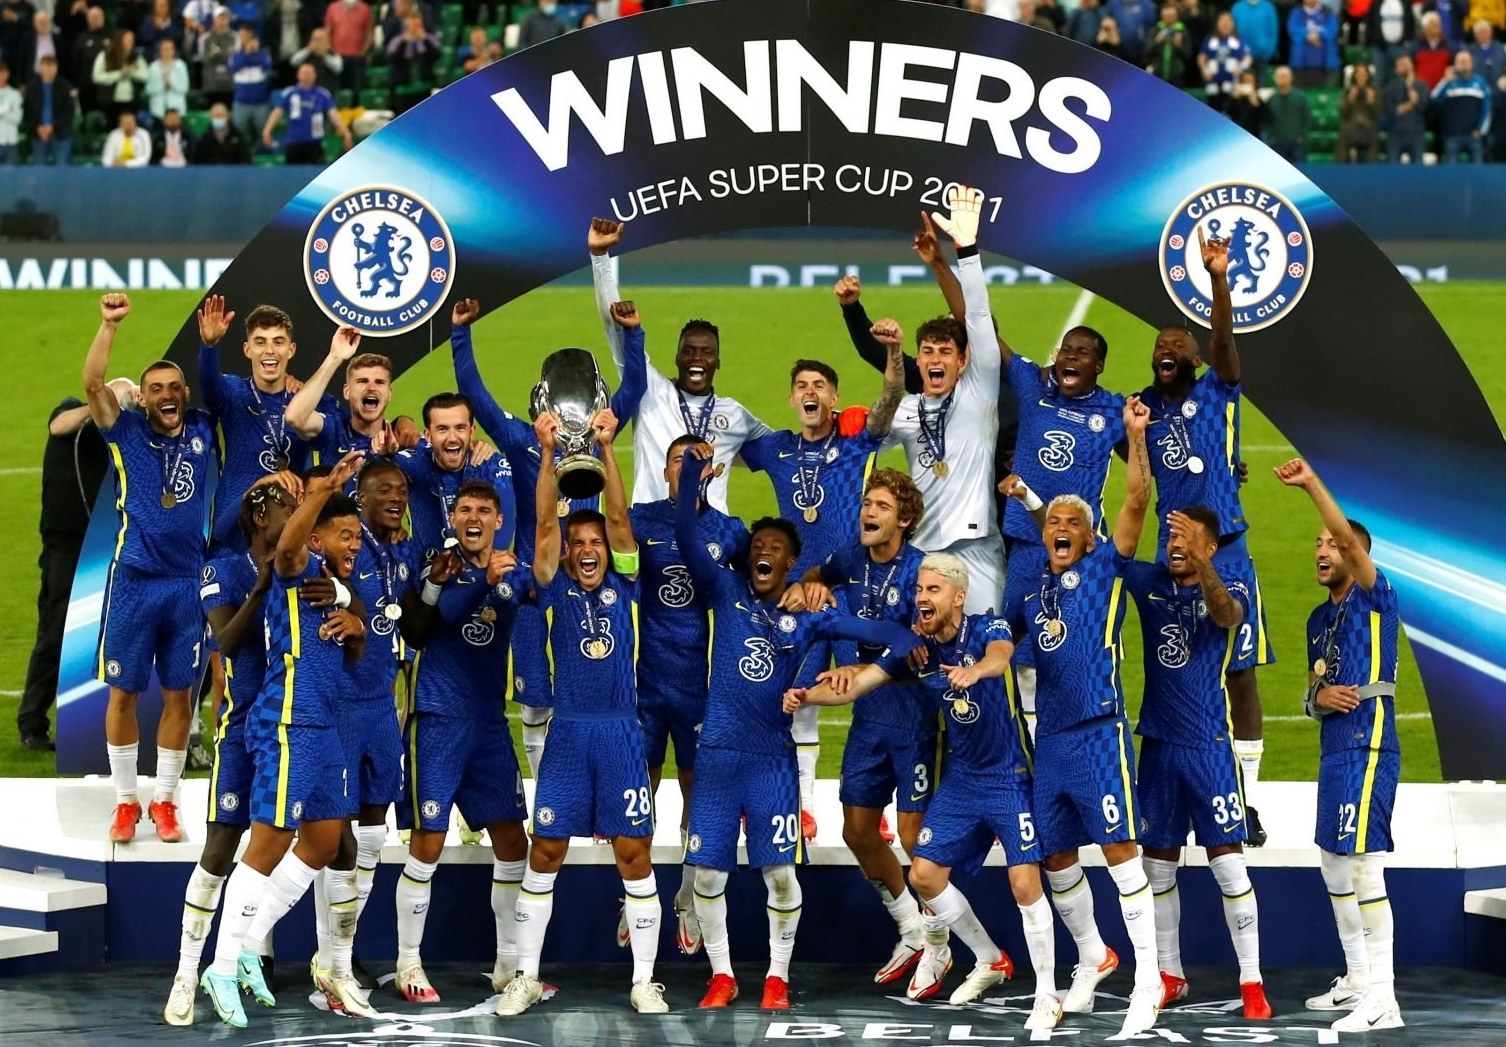 super cup prize money for Chelsea